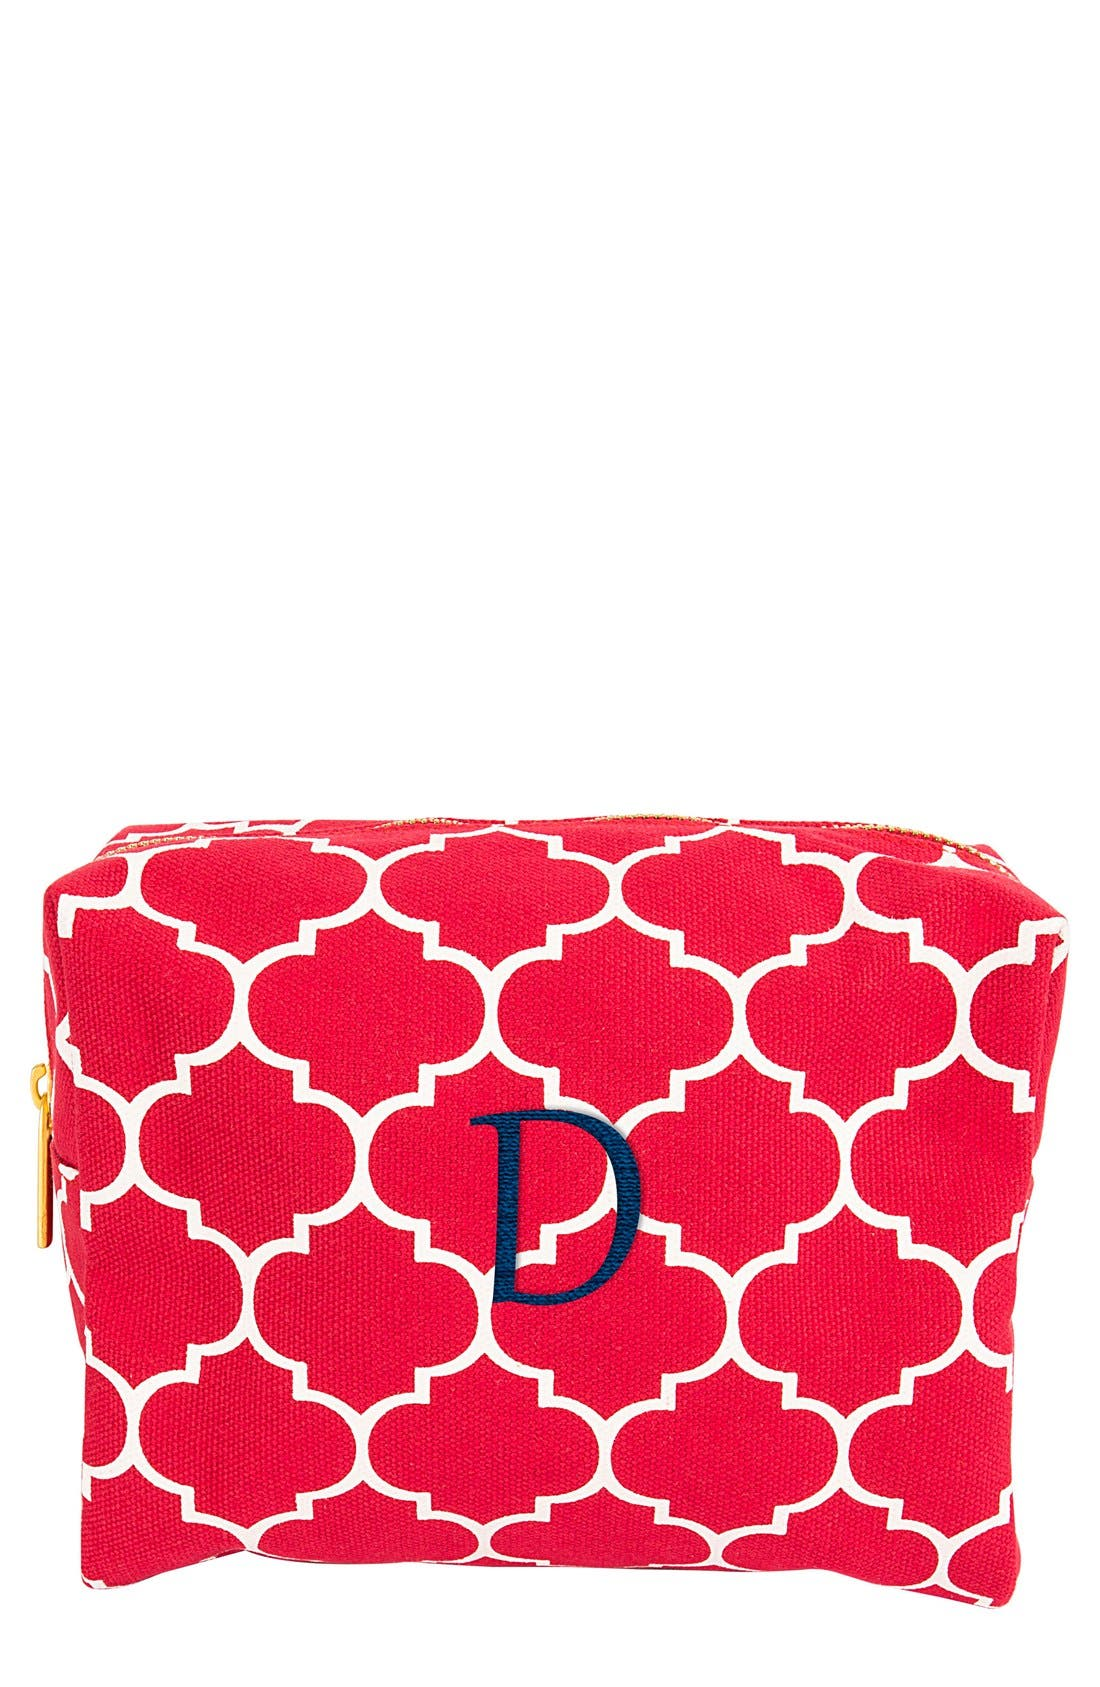 Cathy's Concepts Monogram Cosmetics Case